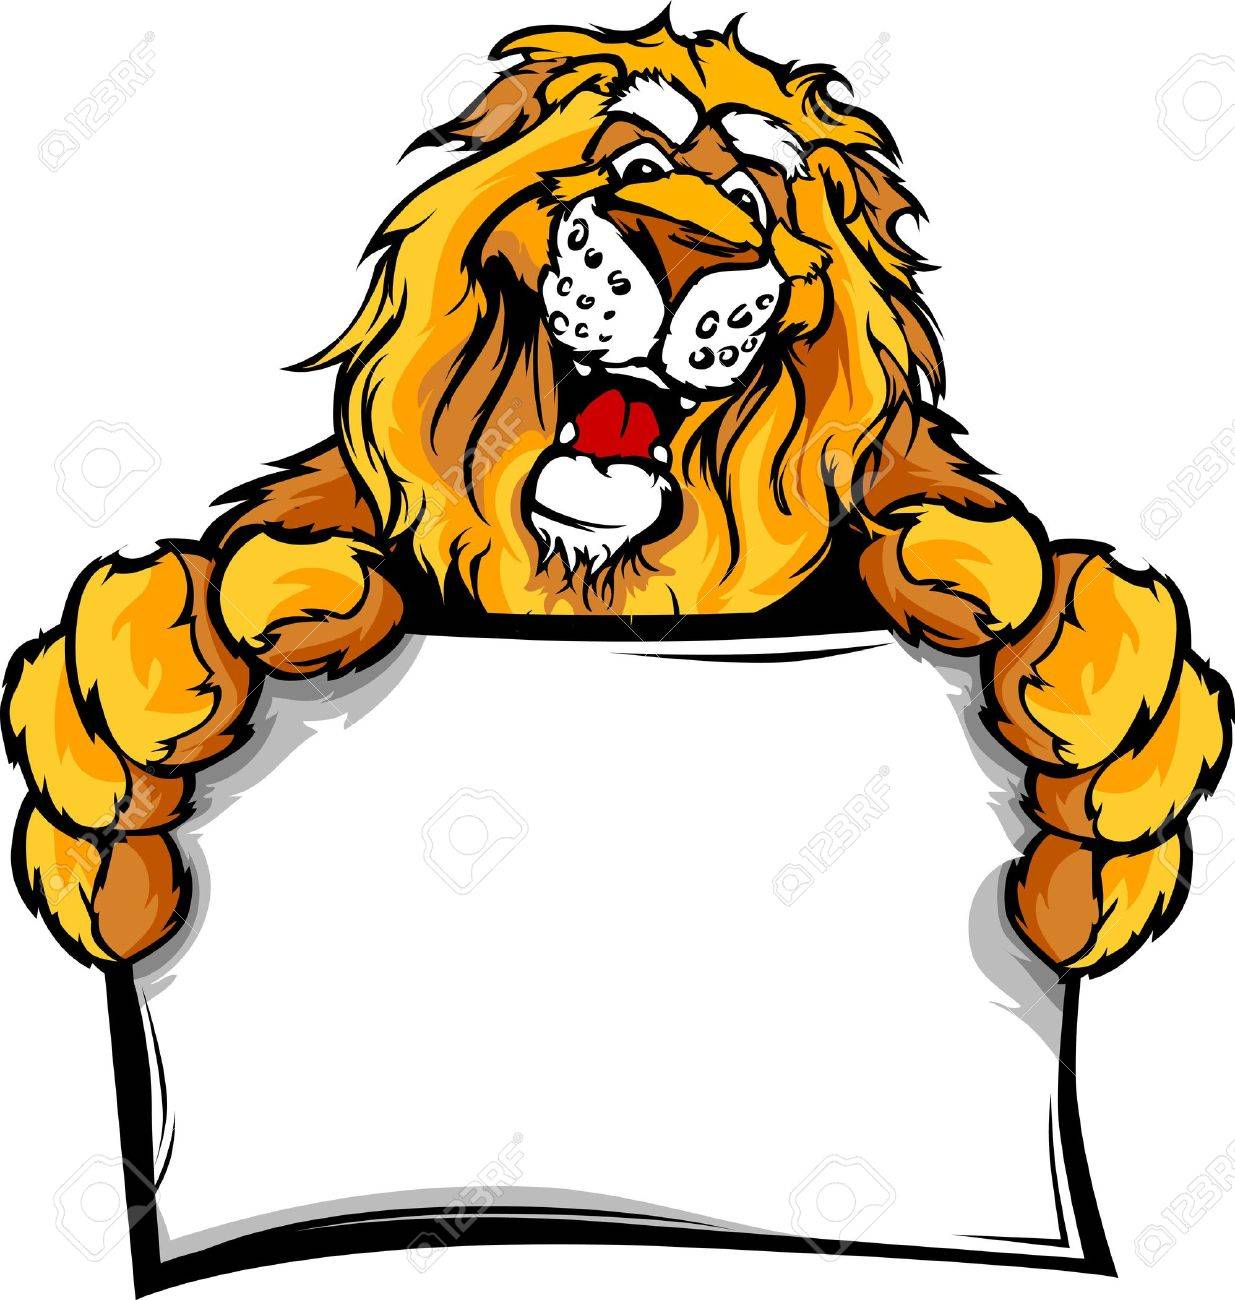 Lion Head Smiling Mascot Holding Sign Vector Illustration Stock Vector - 13208850